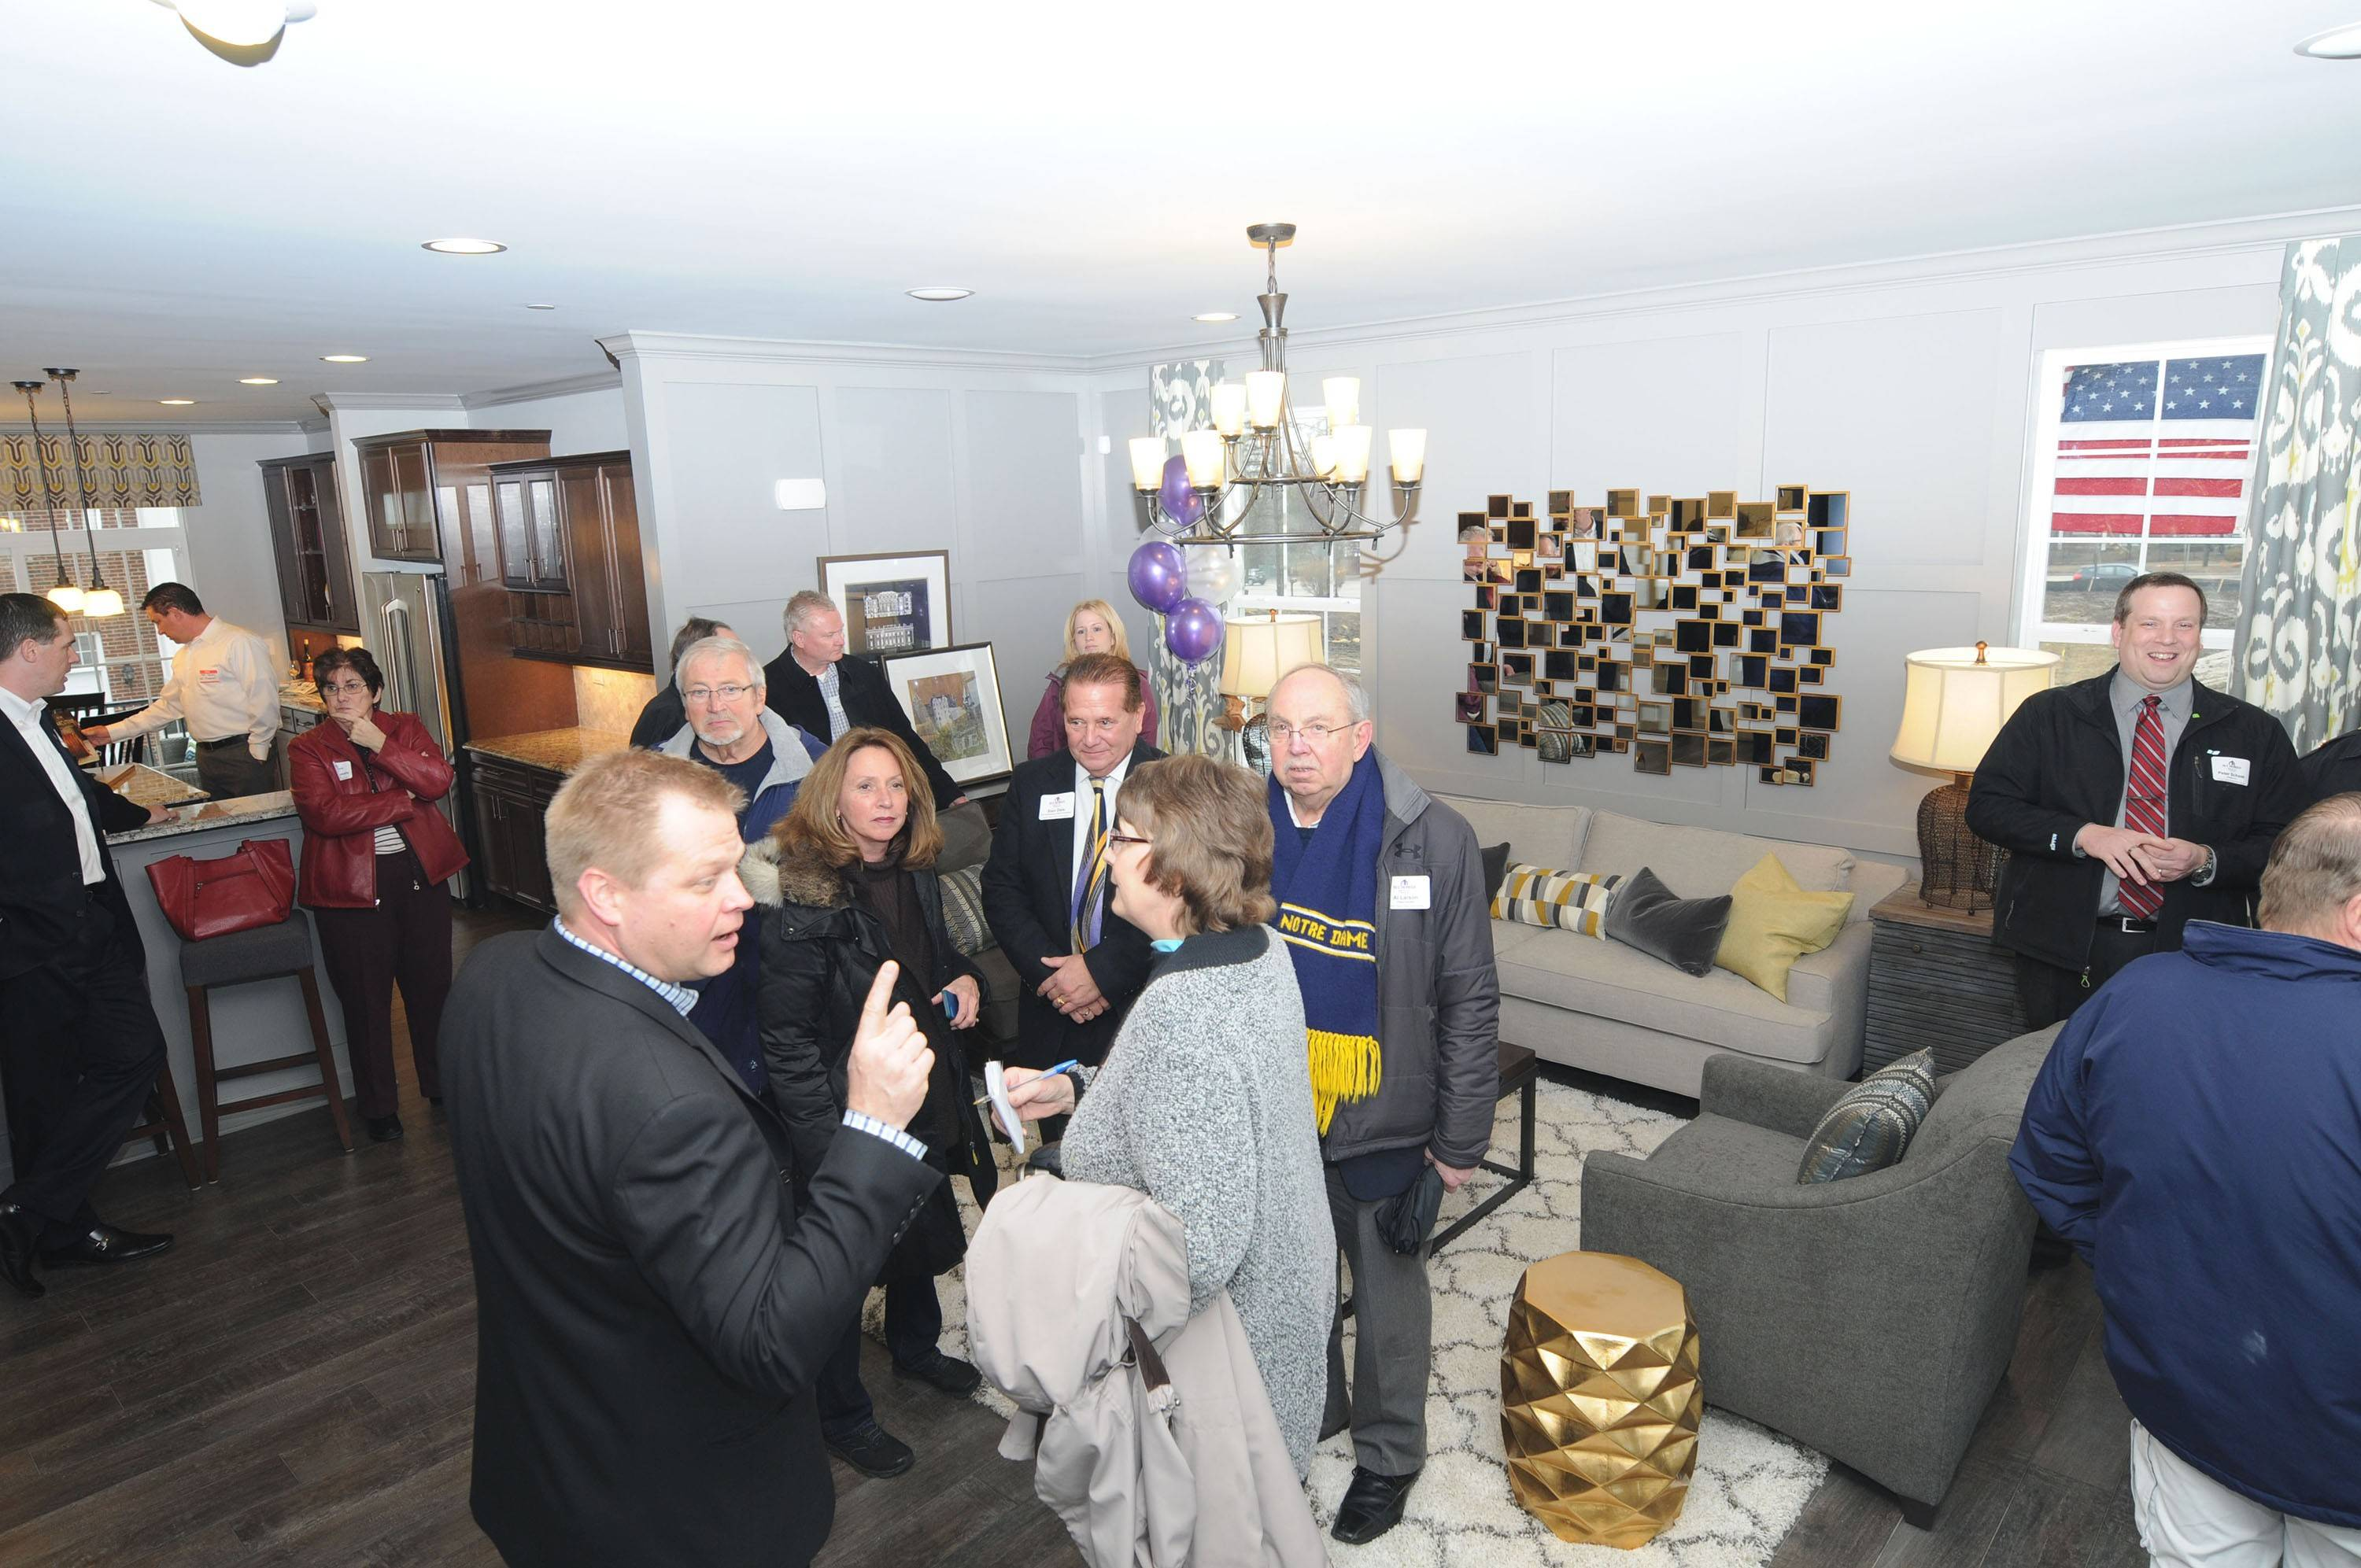 Schaumburg officials take a tour of the model during the ceremonial opening of the new Pleasant Square subdivision at the northwest corner of Schaumburg and Roselle roads Thursday afternoon.